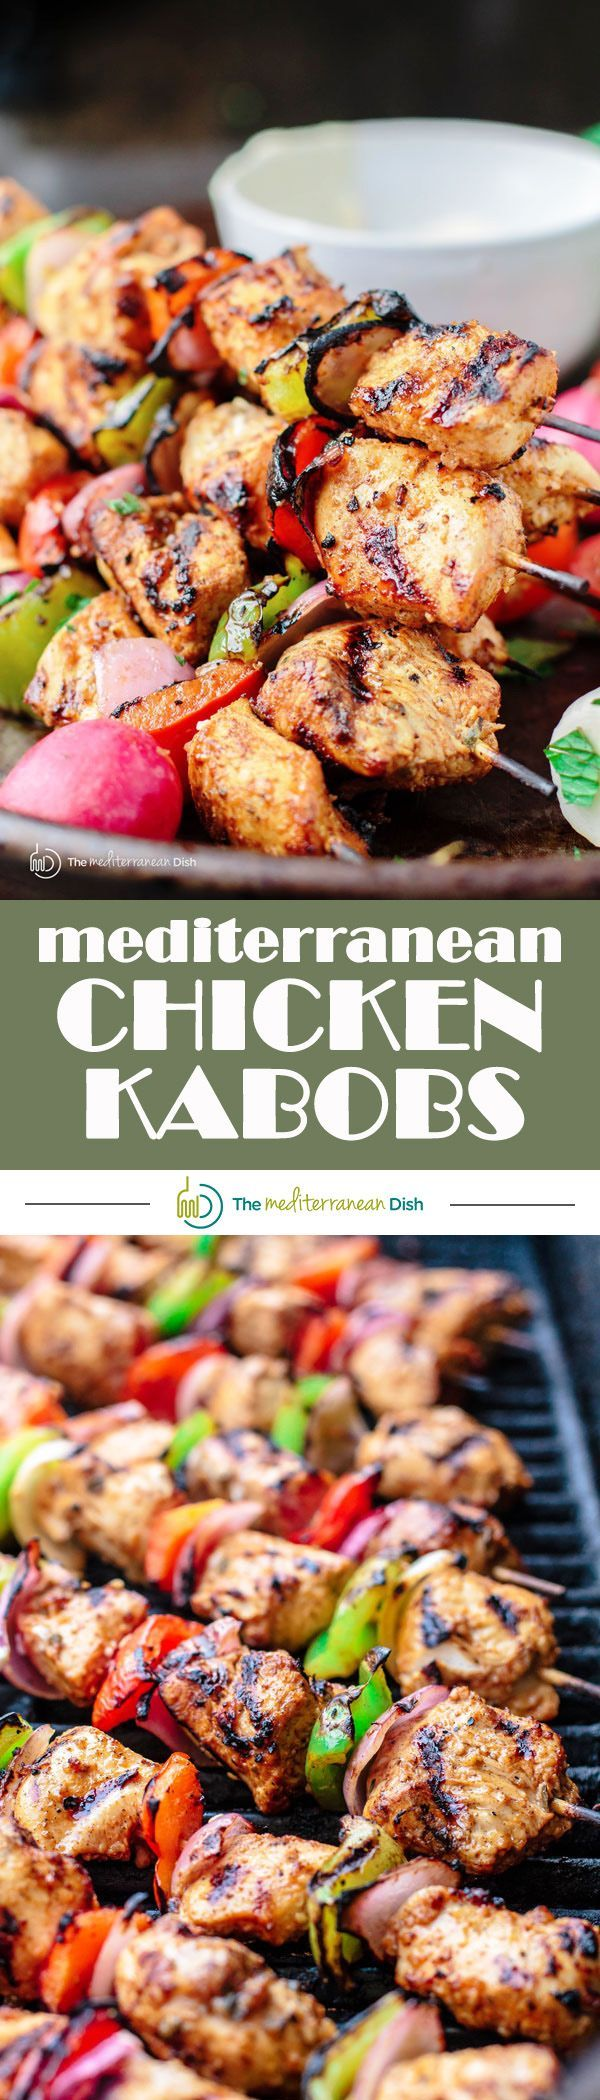 Mediterranean Grilled Chicken Kabobs Recipe + Cayenne Tahini Sauce! Make chicken kabobs like a pro and be the hero of the party! Marinated in Mediterranean spices with fresh garlic and lime juice, these kabobs are simply succulent! Try them for your next